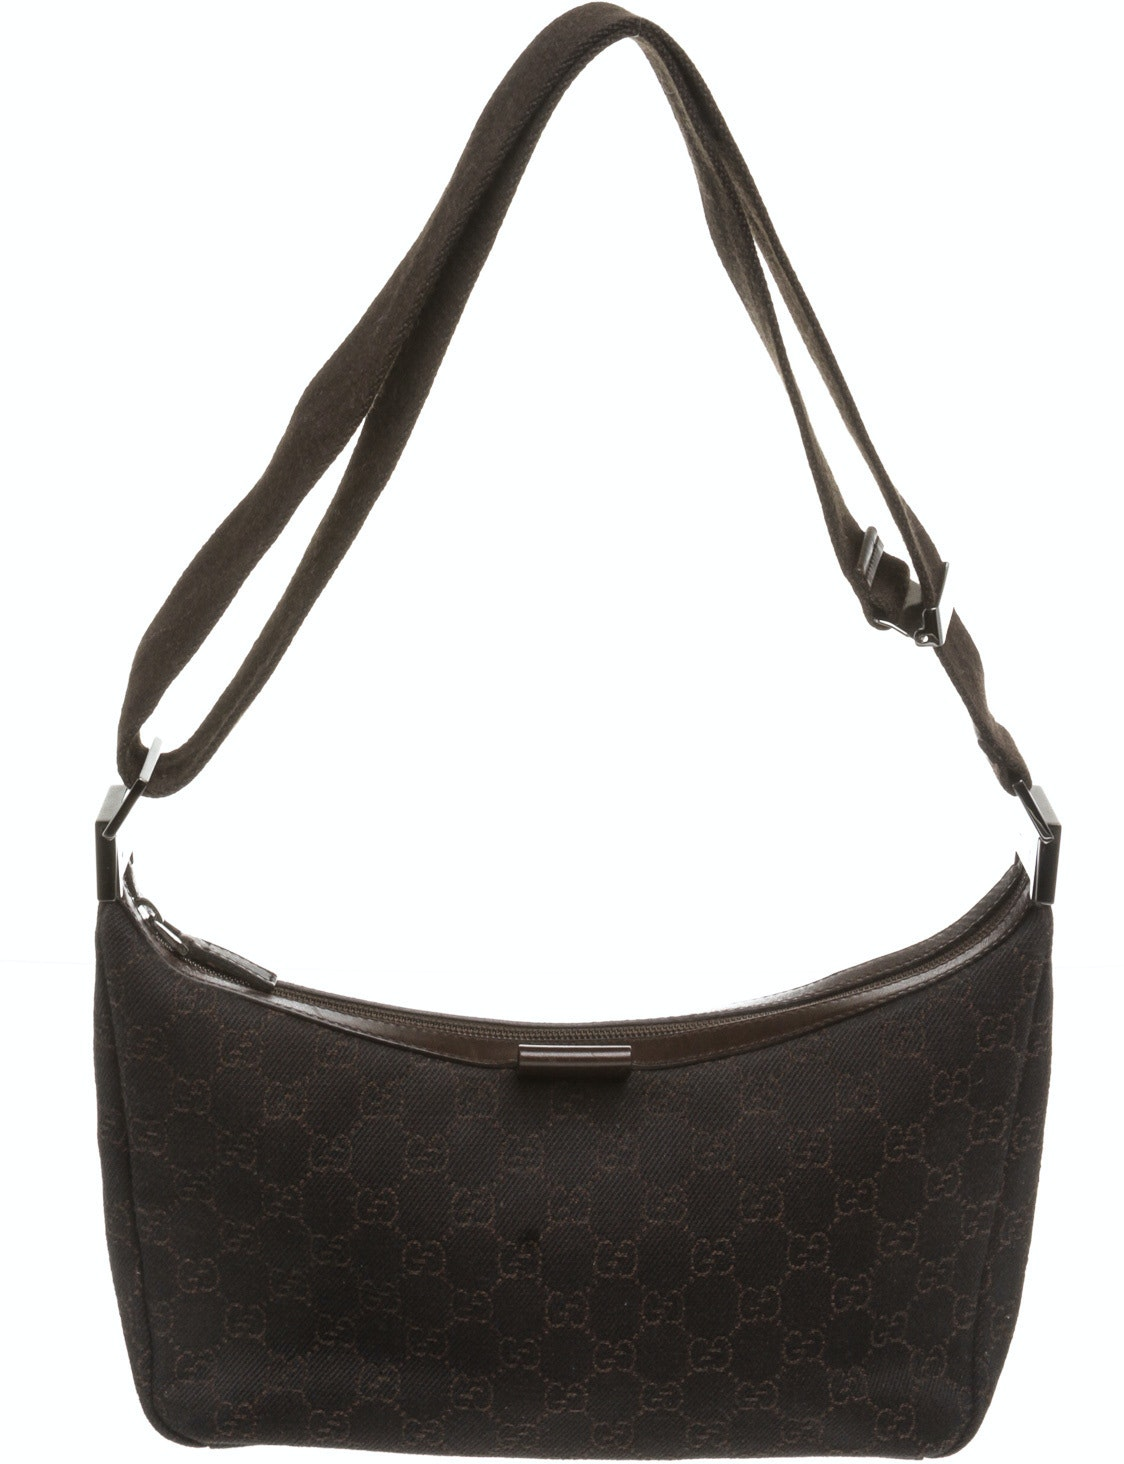 Gucci Crossbody Monogram GG Brown